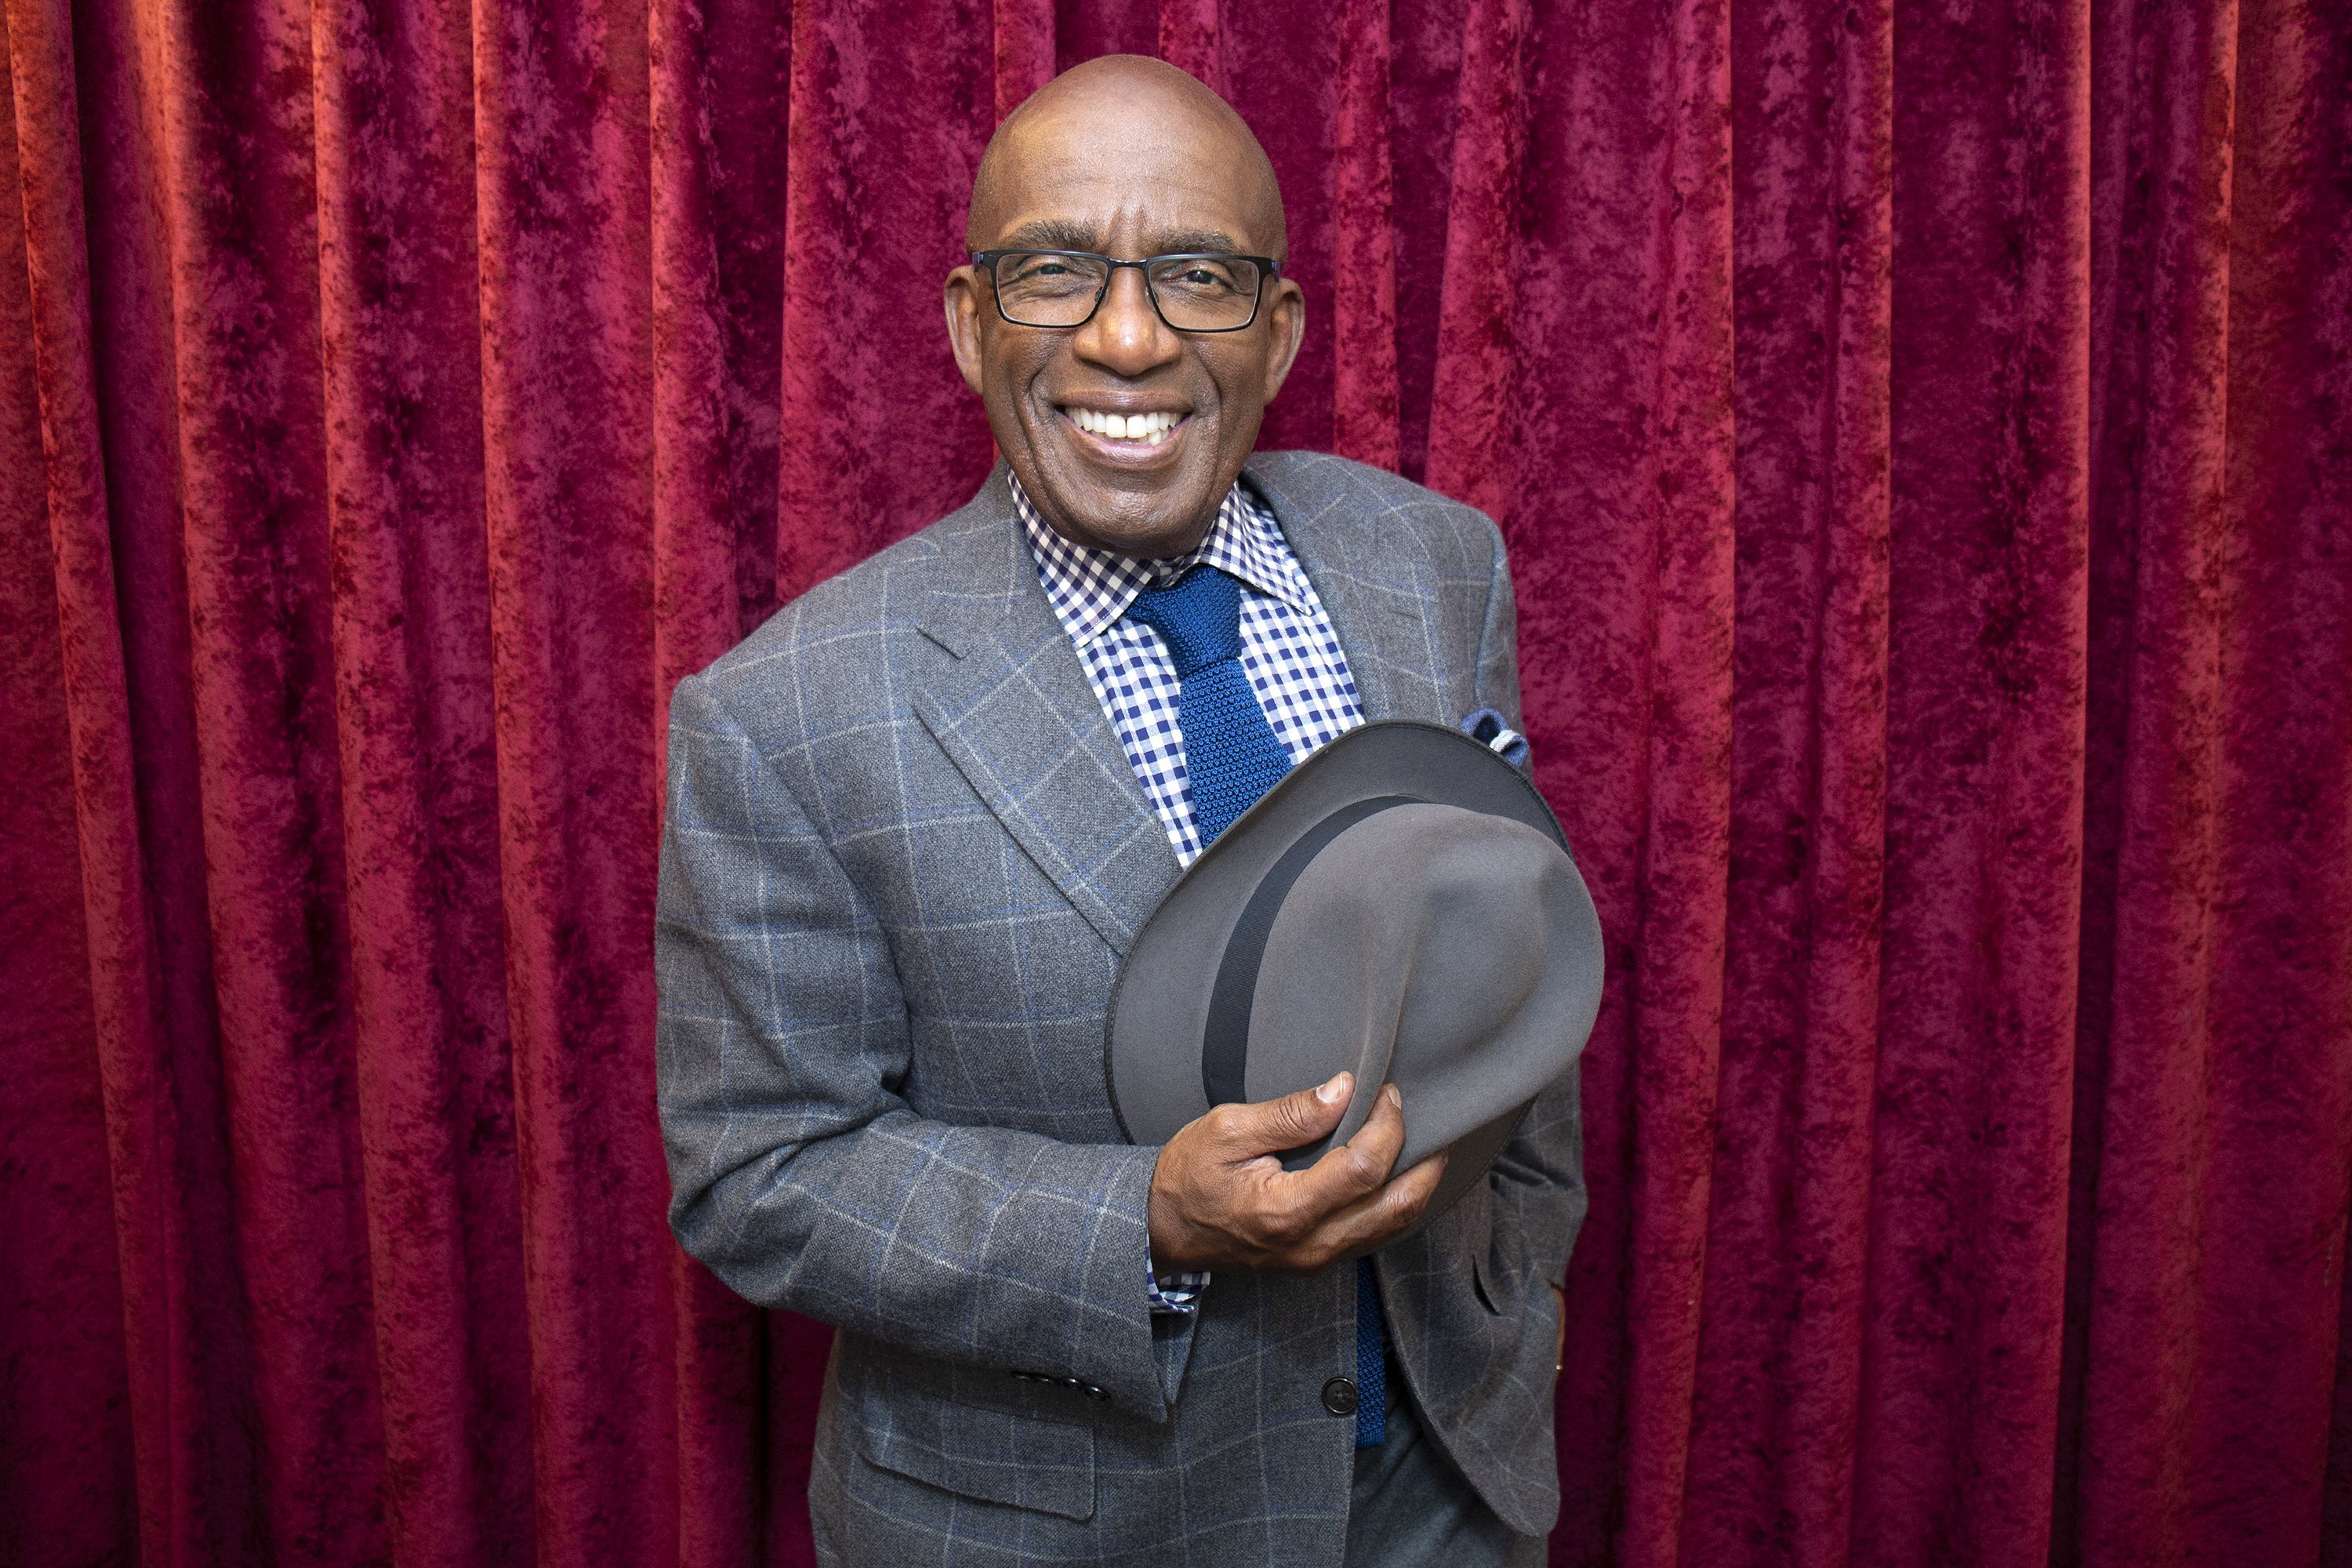 Al Roker on October 2, 2018 in New York City | Source: Getty Images